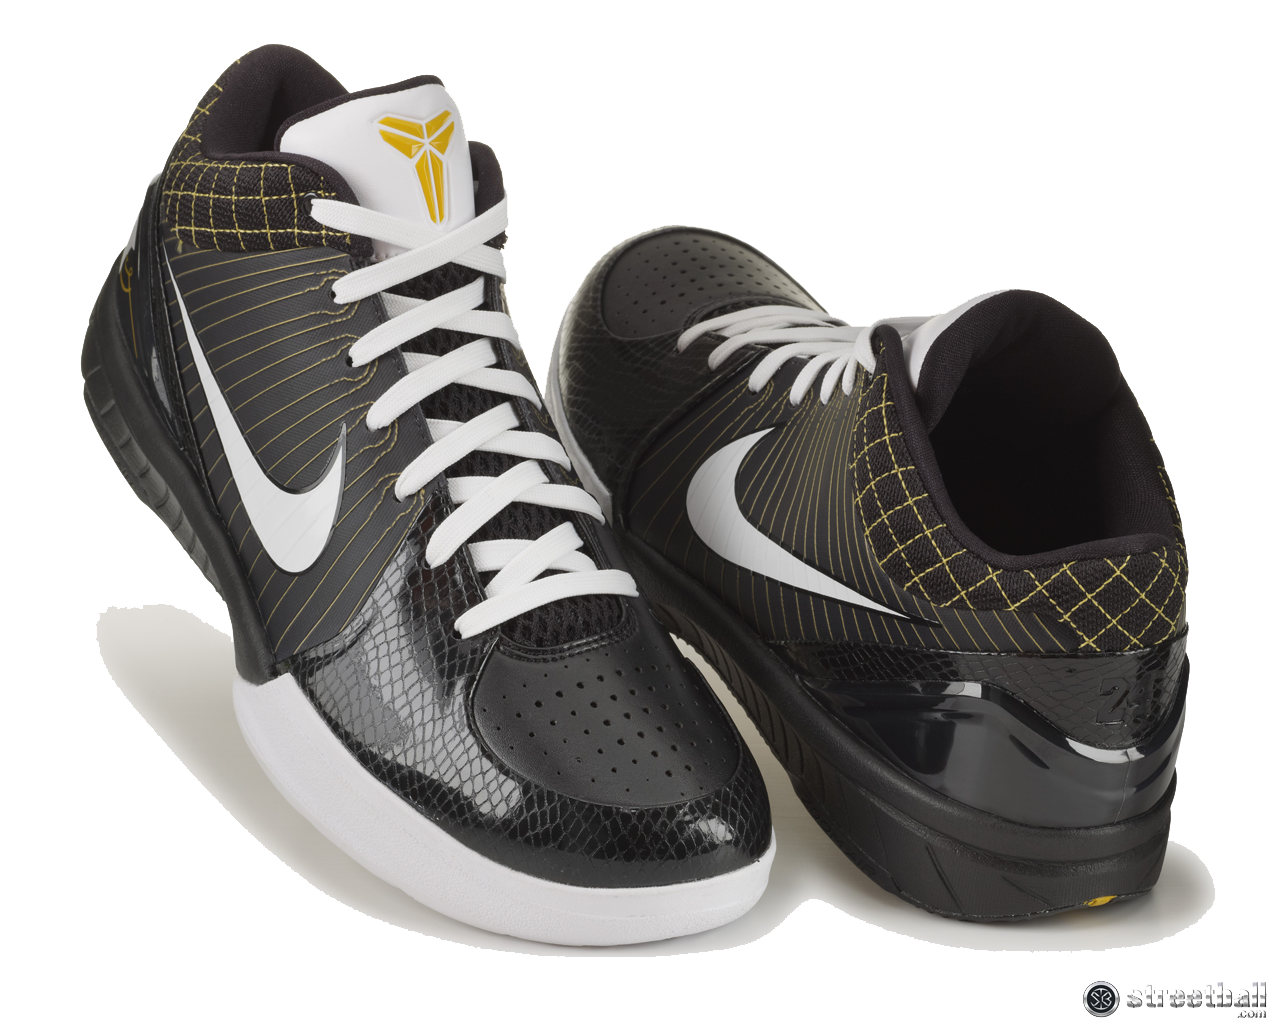 Nike Shoes PNG Image - Nike Shoe PNG